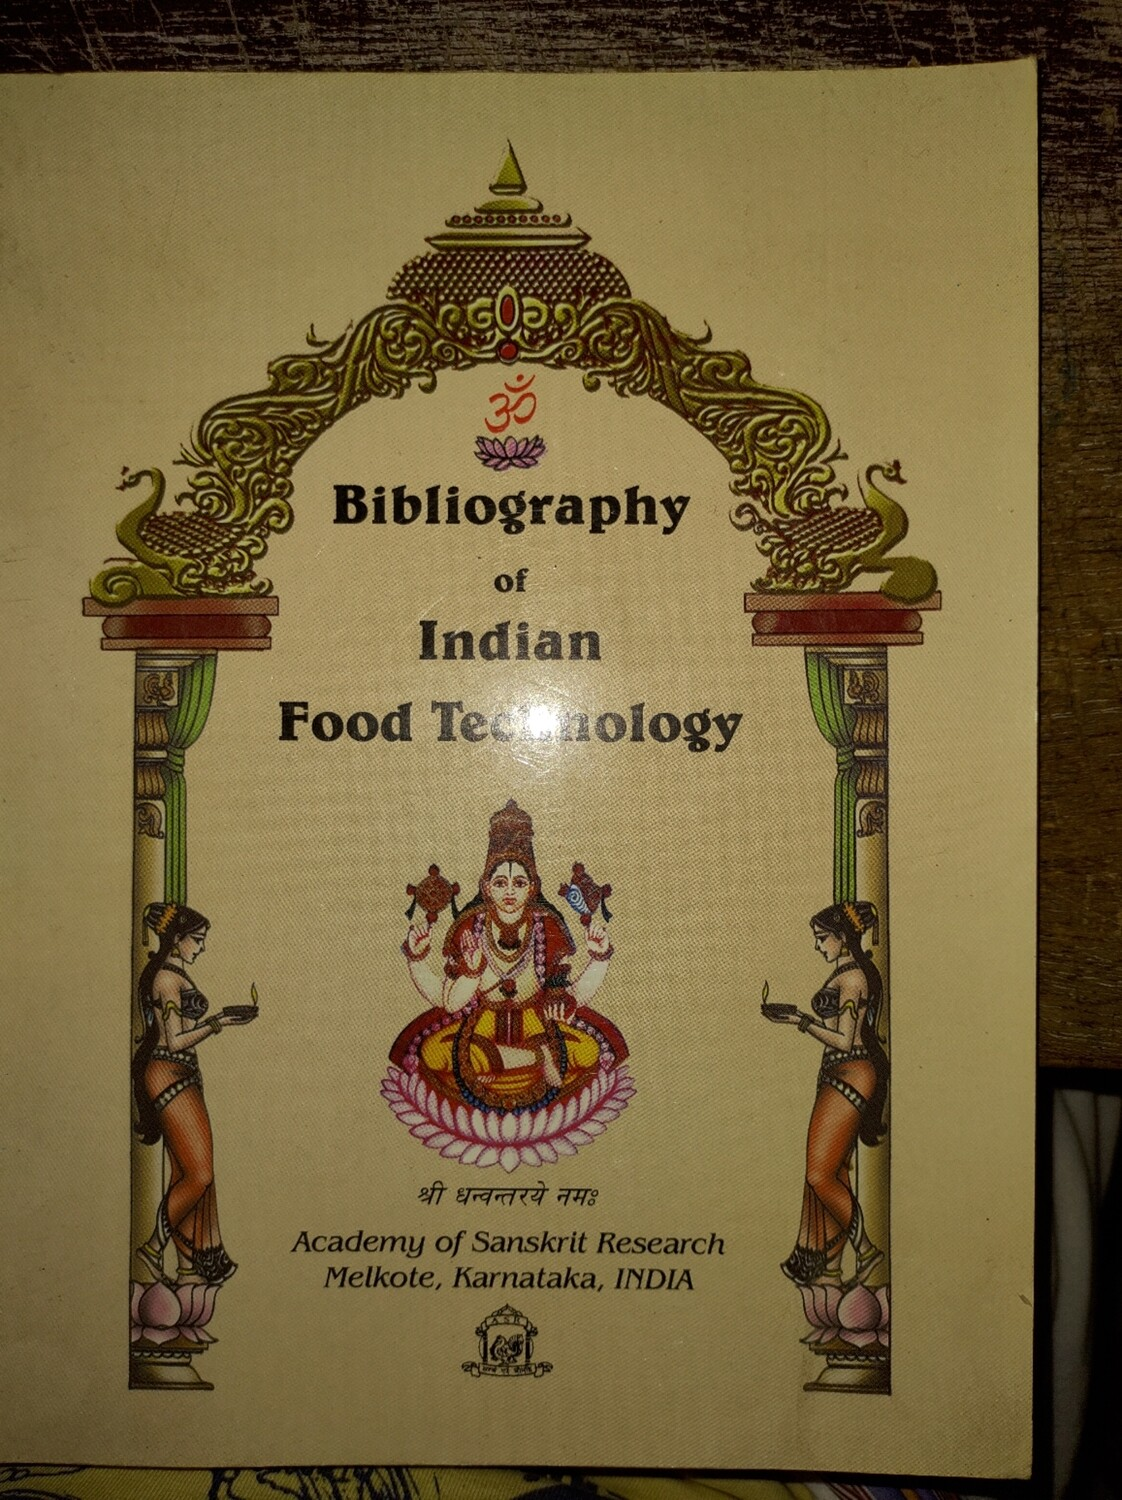 ASR Book - Bibliography of Indian food technology